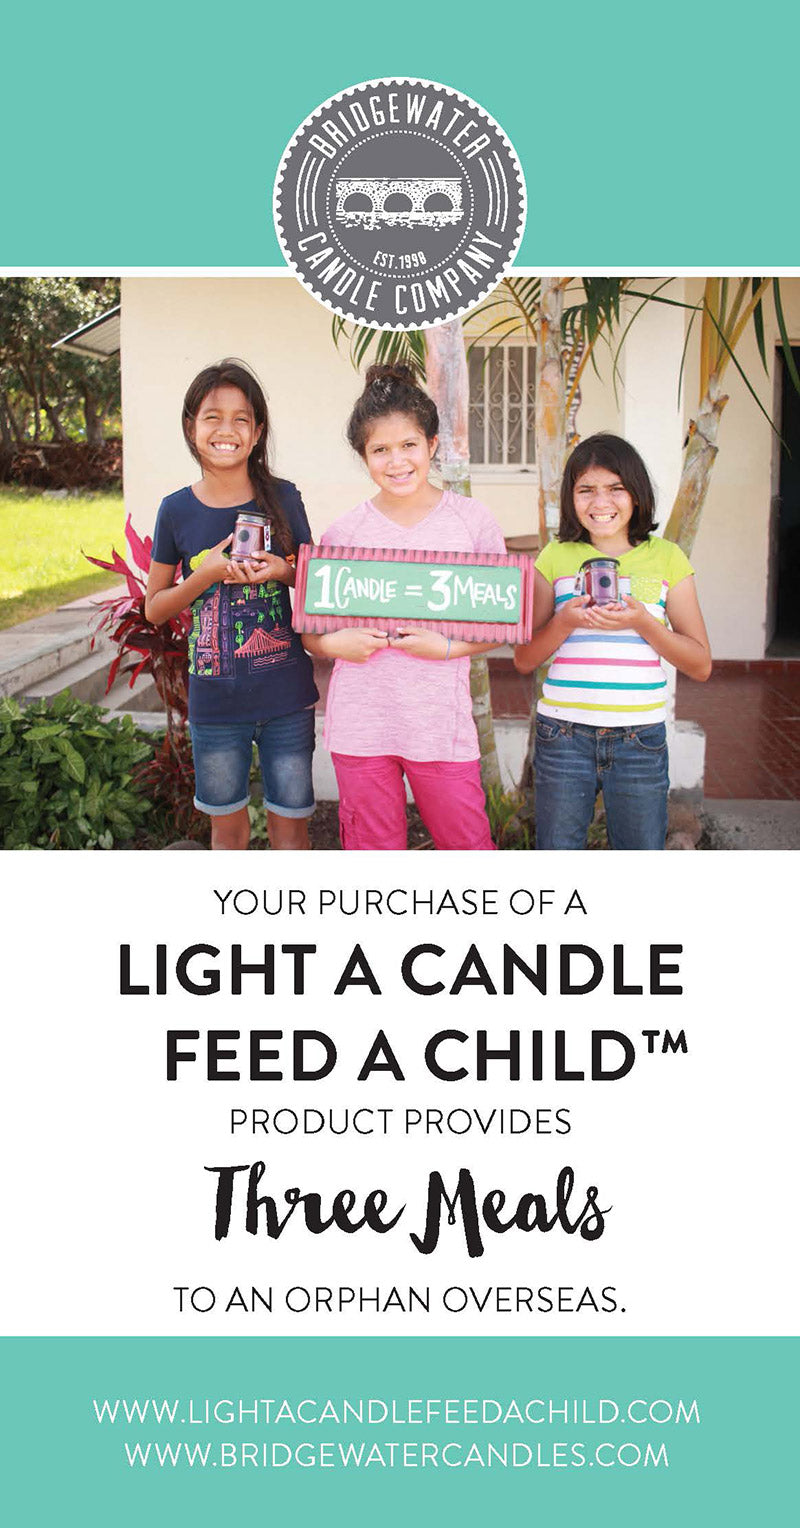 Light a Candle Feed a Child Poster